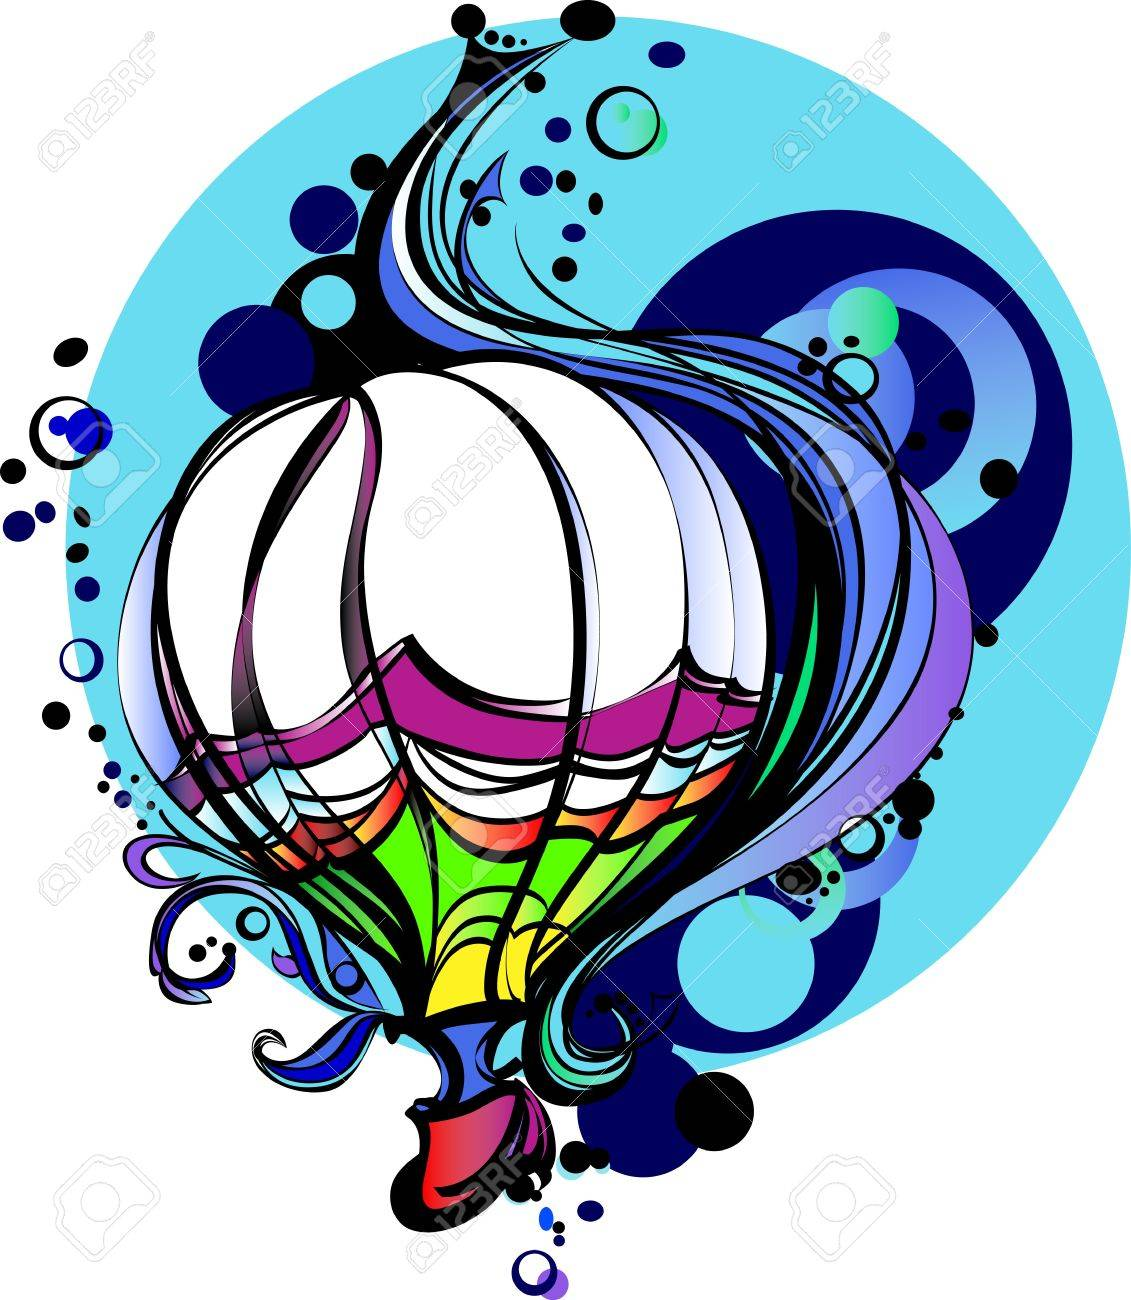 Colorful Flying Hot Air Balloon Graphic Vector Image Stock Vector - 12195975